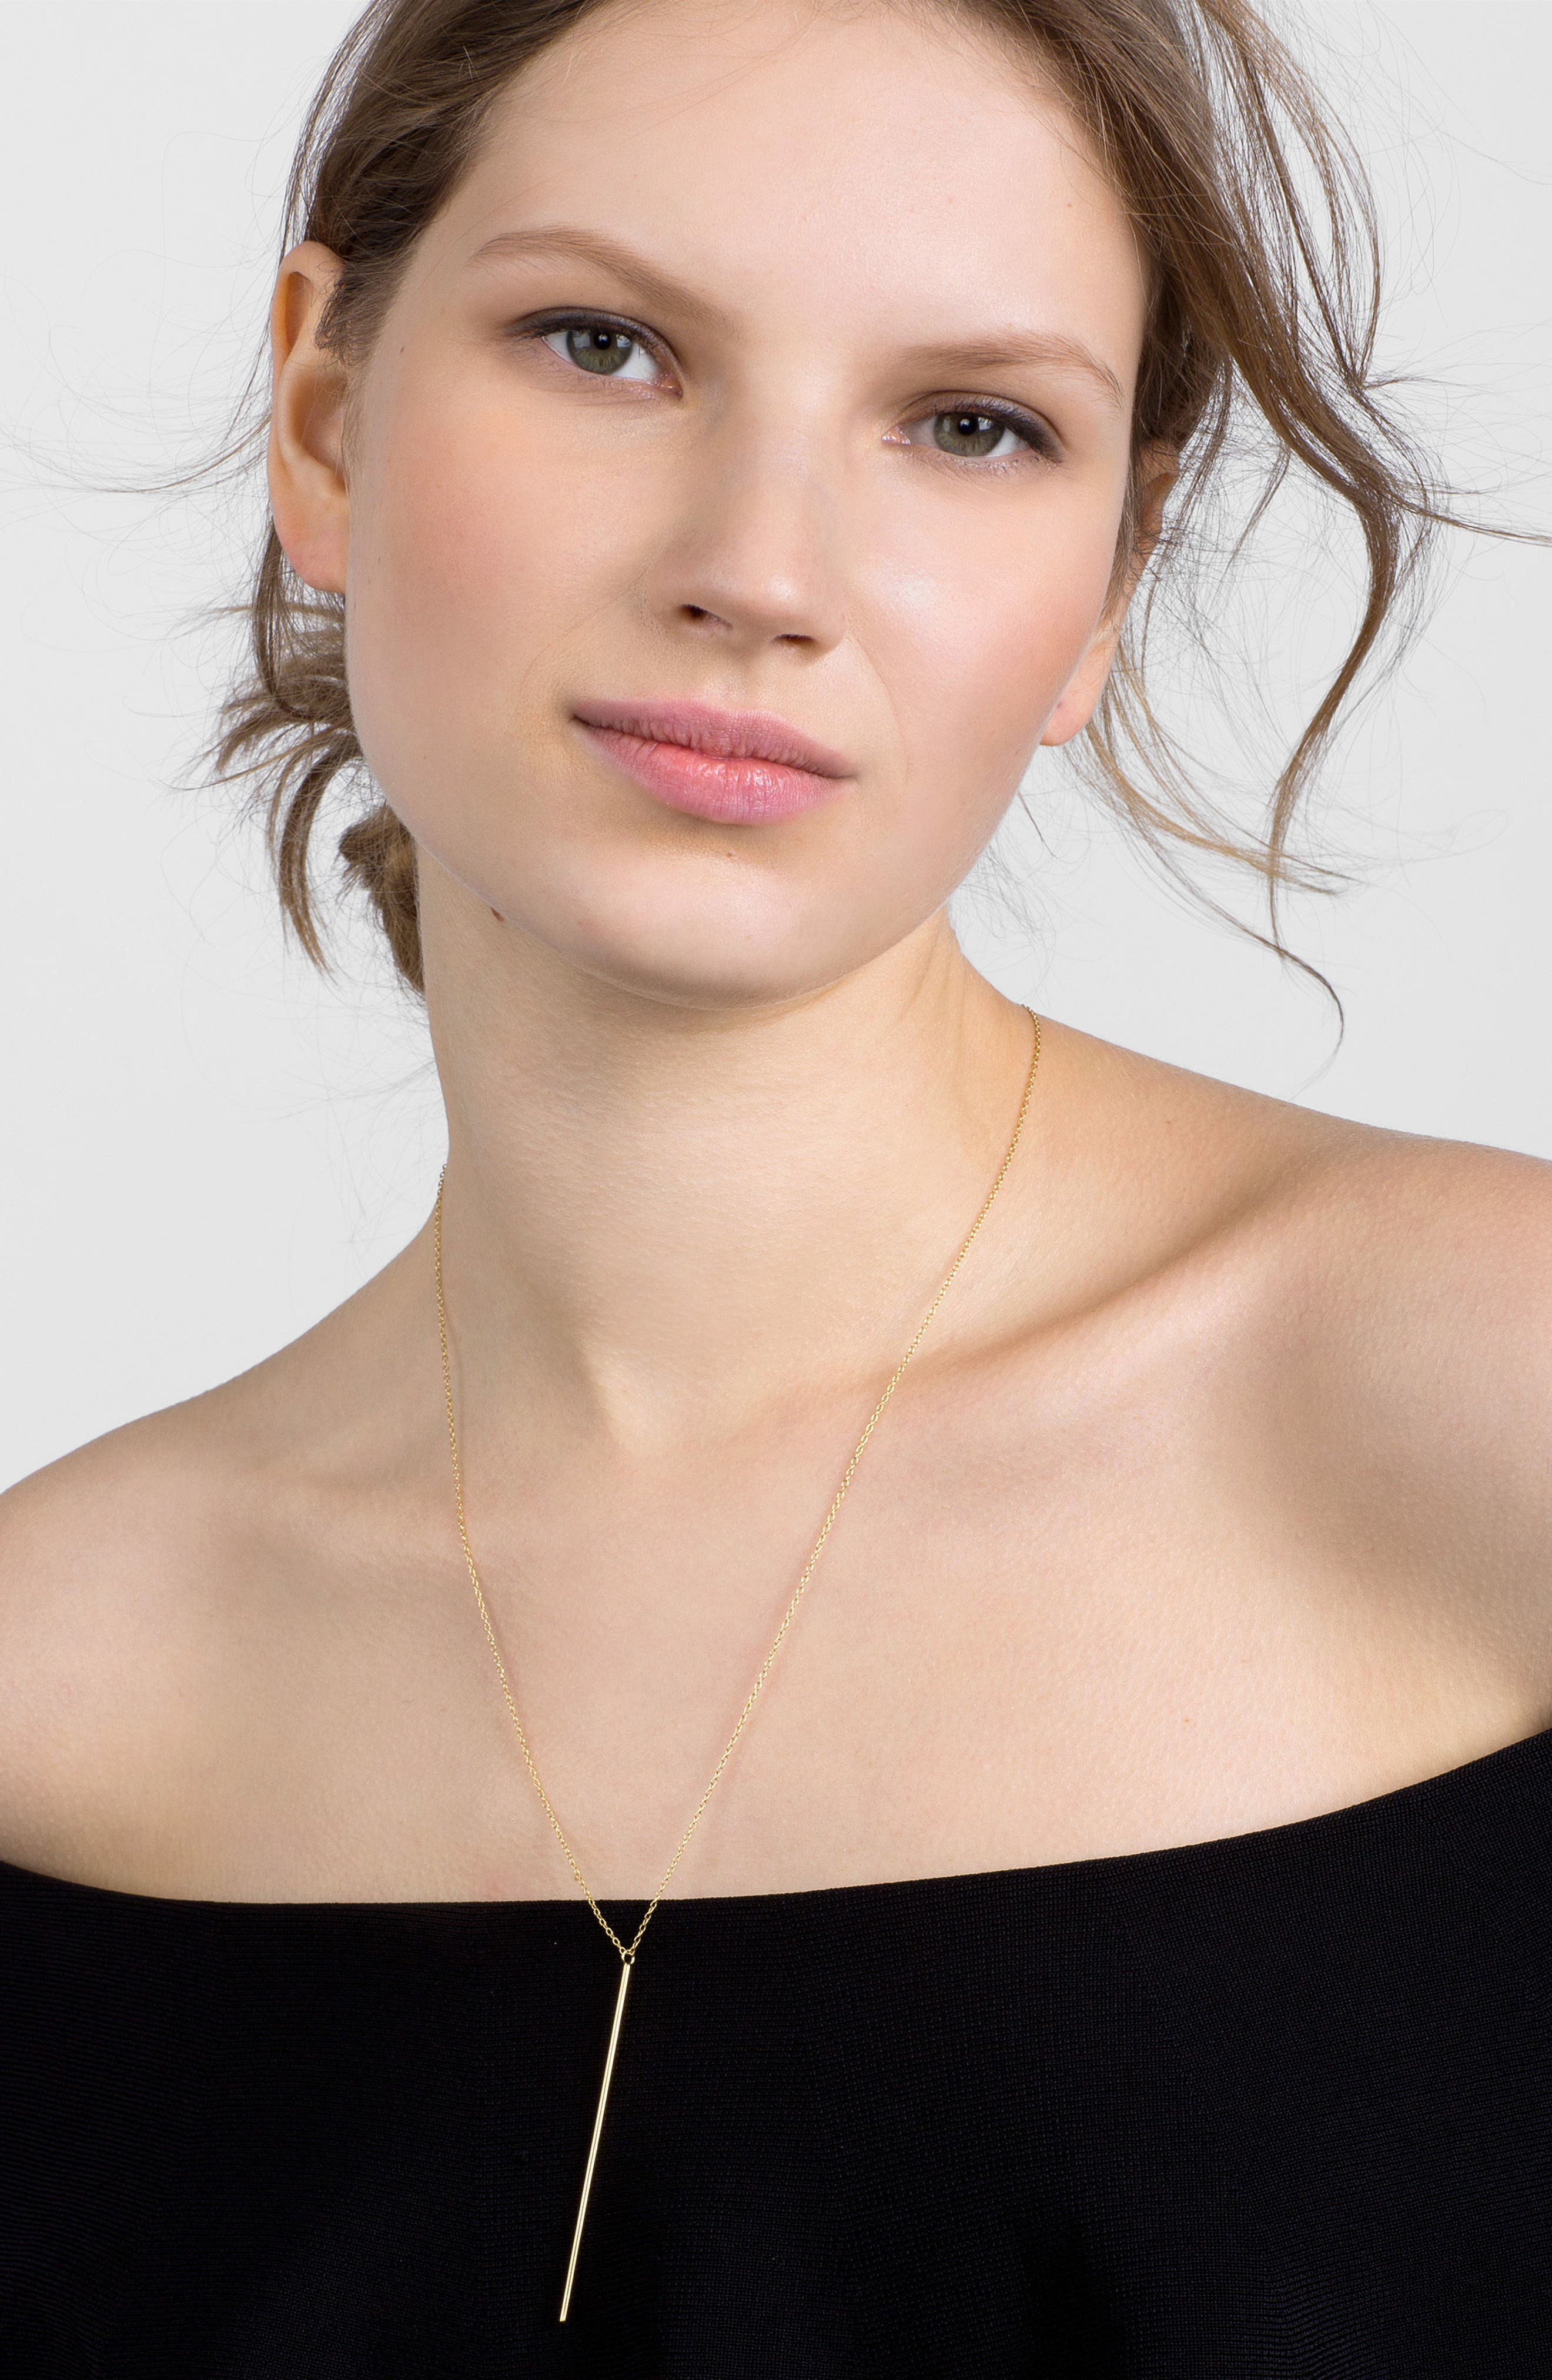 Mara Everyday Fine Layered Necklace,                             Alternate thumbnail 2, color,                             Gold